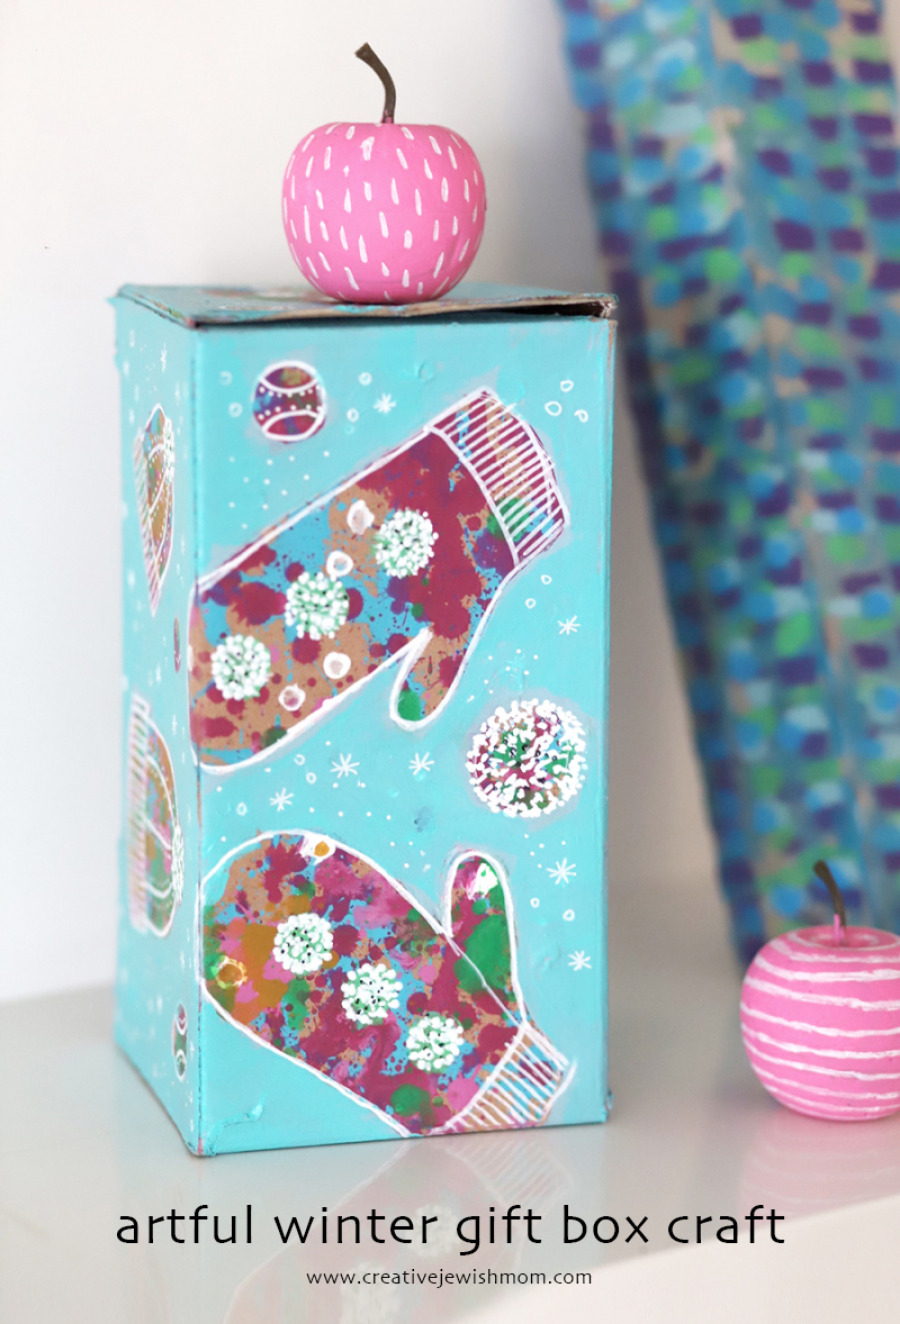 Recycled gift box with painted mittens